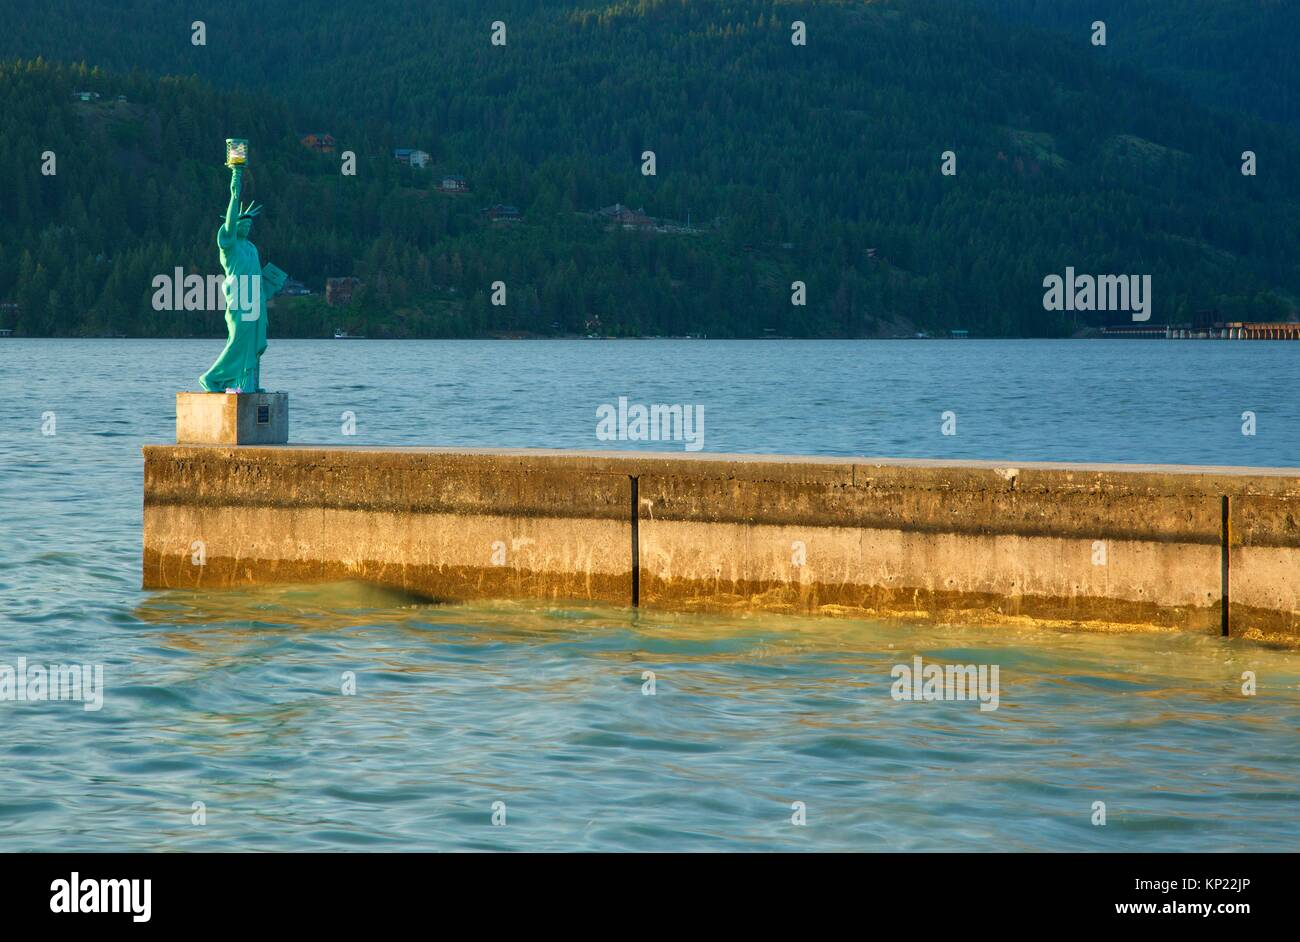 Statue of Liberty replica, City Beach Park, Sandpoint, Idaho. - Stock Image